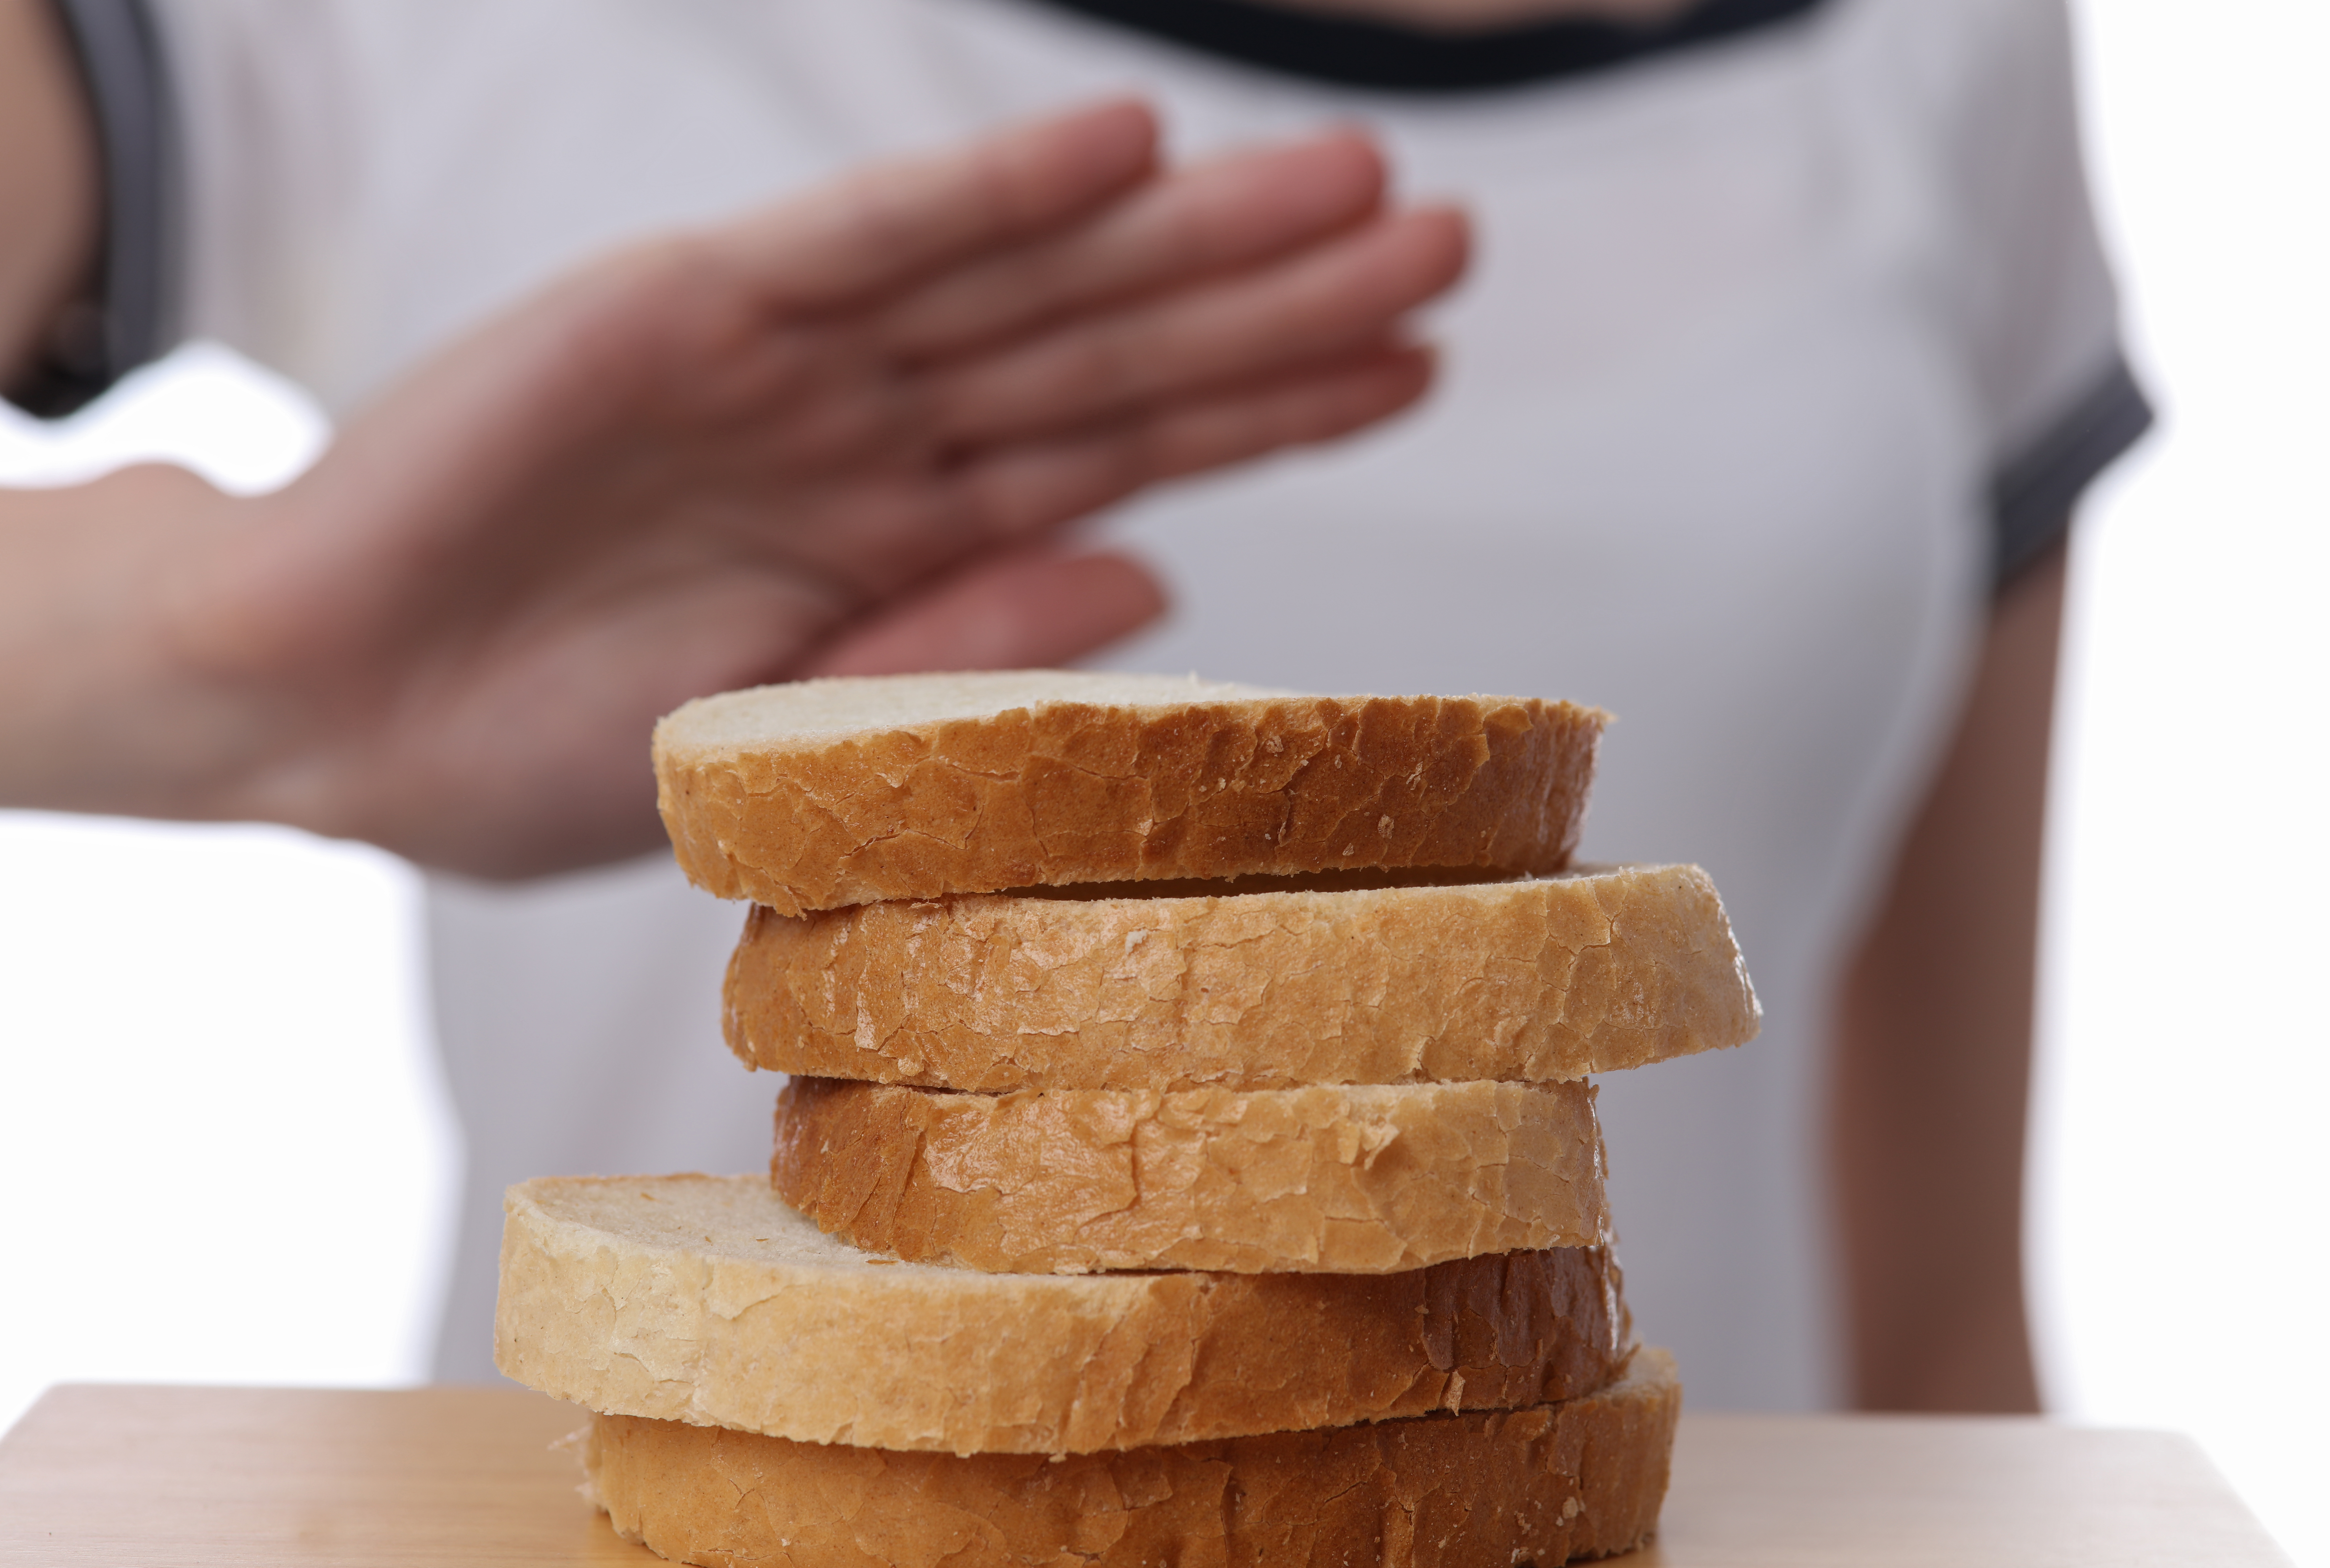 How Do You Know If You Have Coeliac Disease?